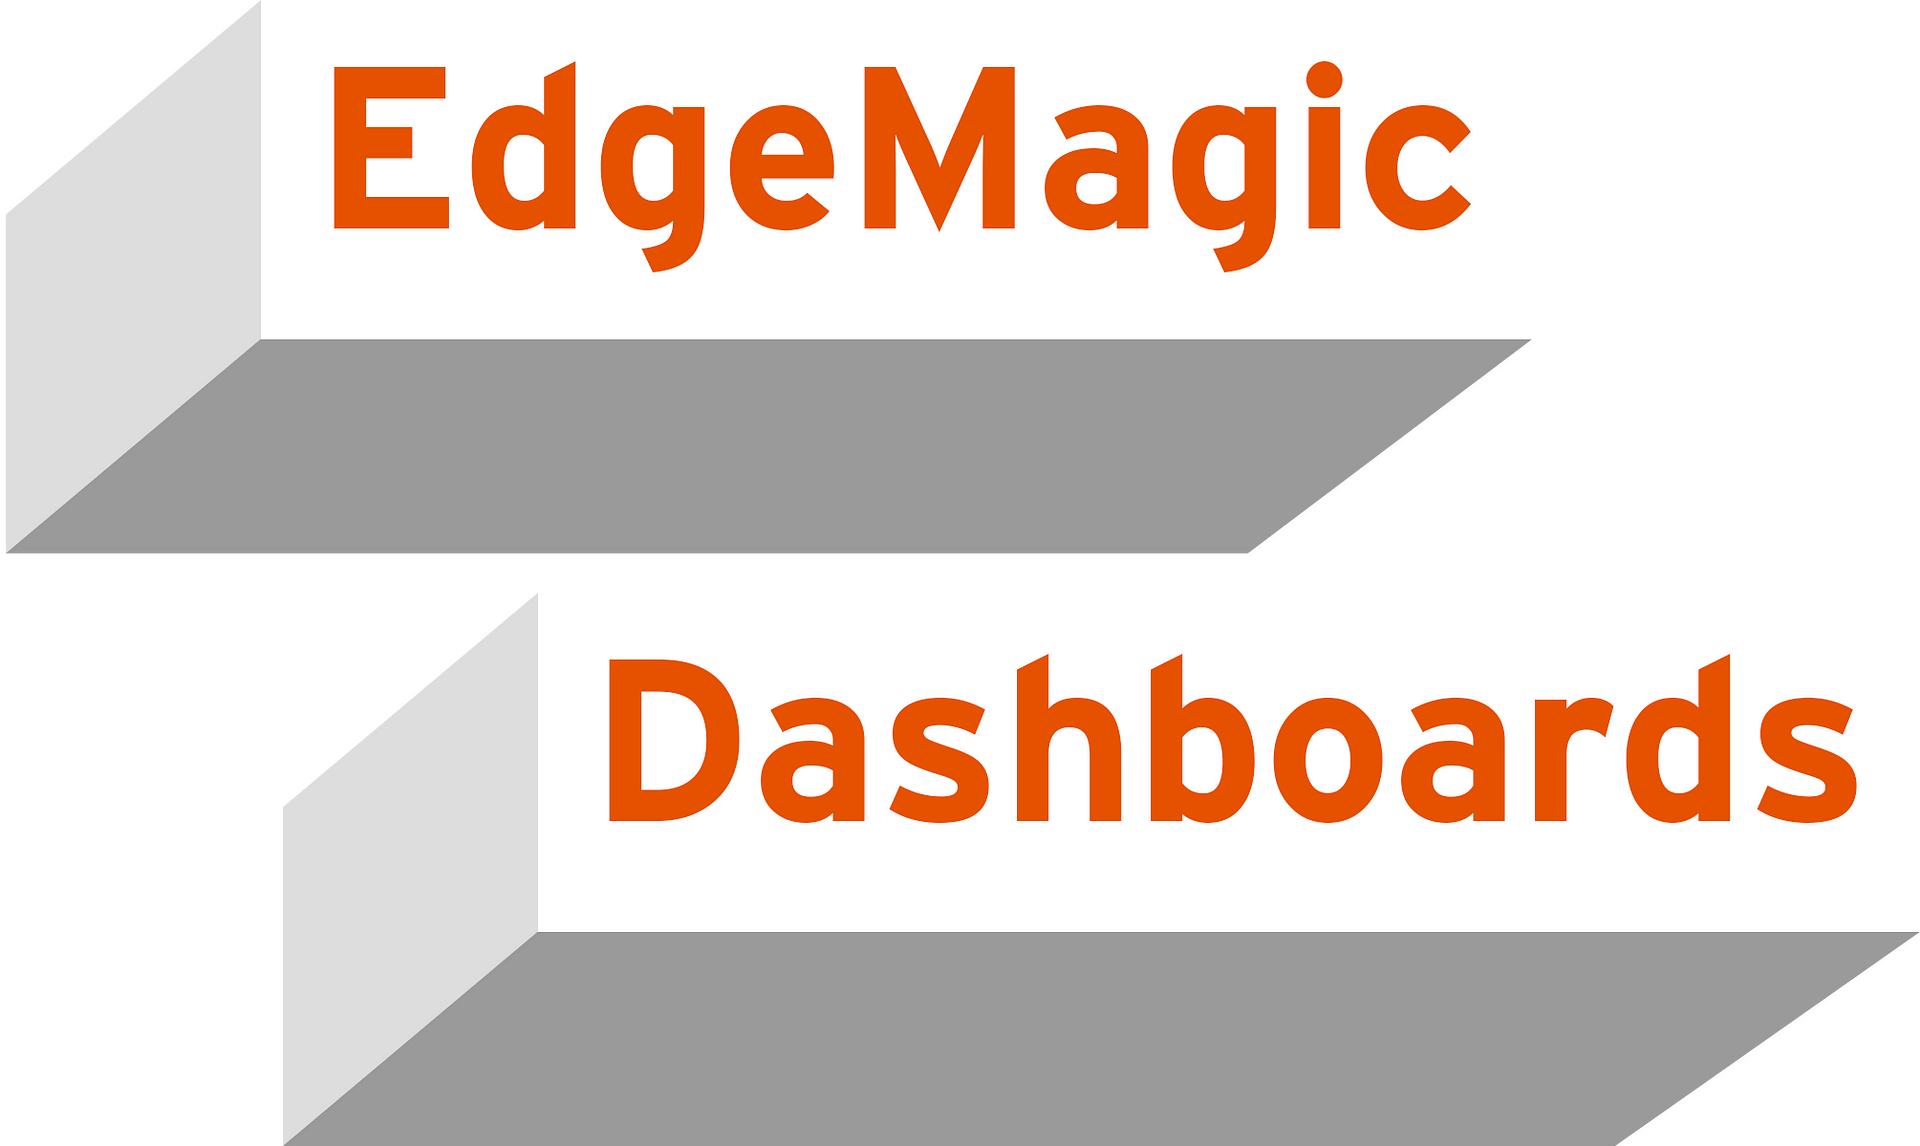 Get a handle on your RFID data with EdgeMagic RFID software dashboards.